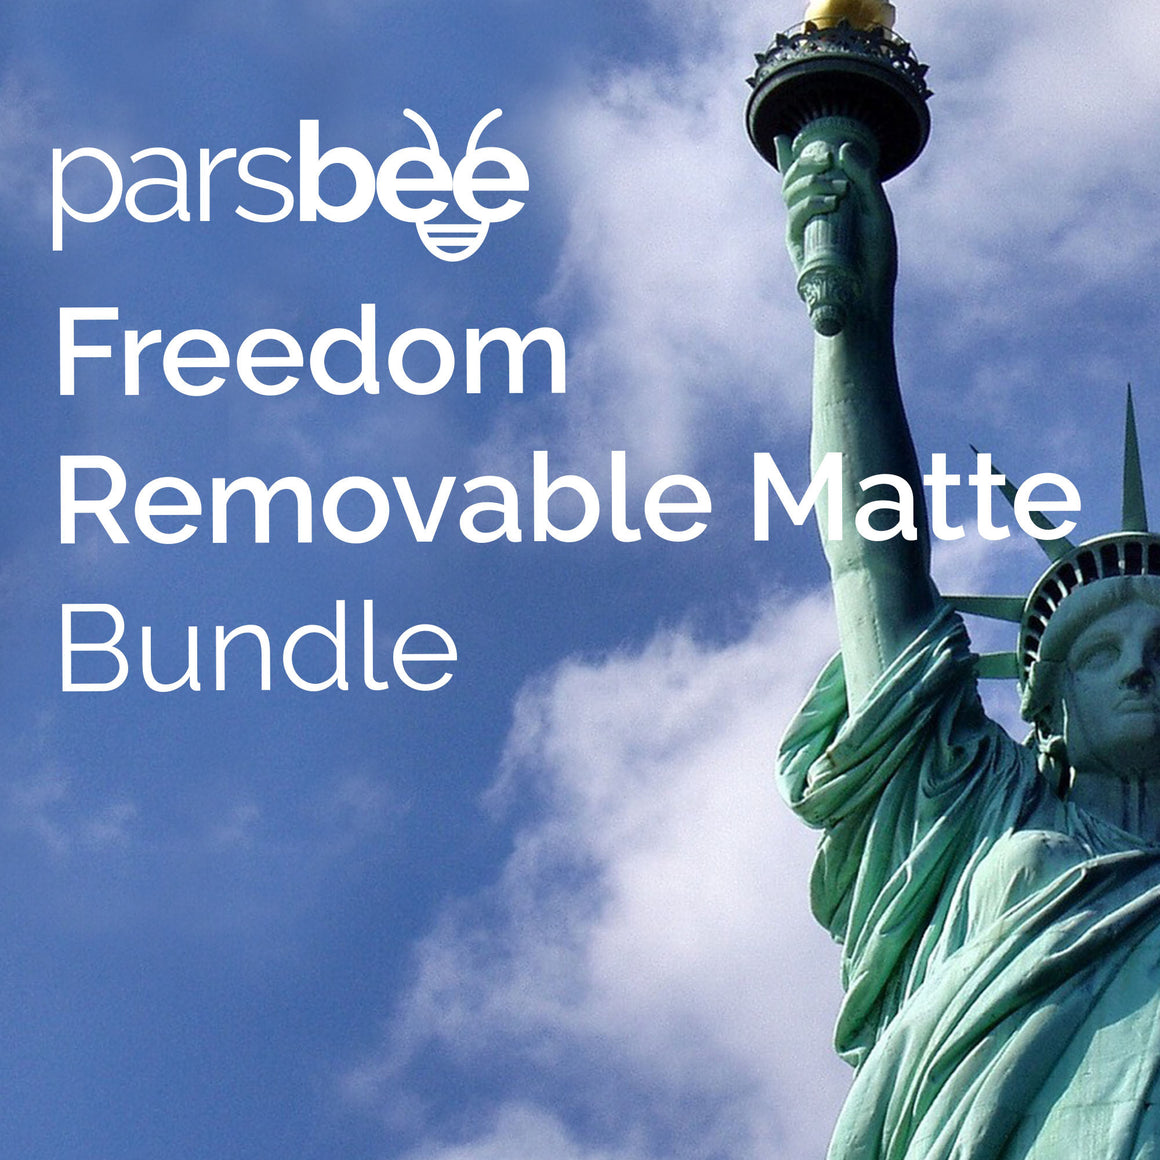 Parsbee Freedom Removable Matte Bundle